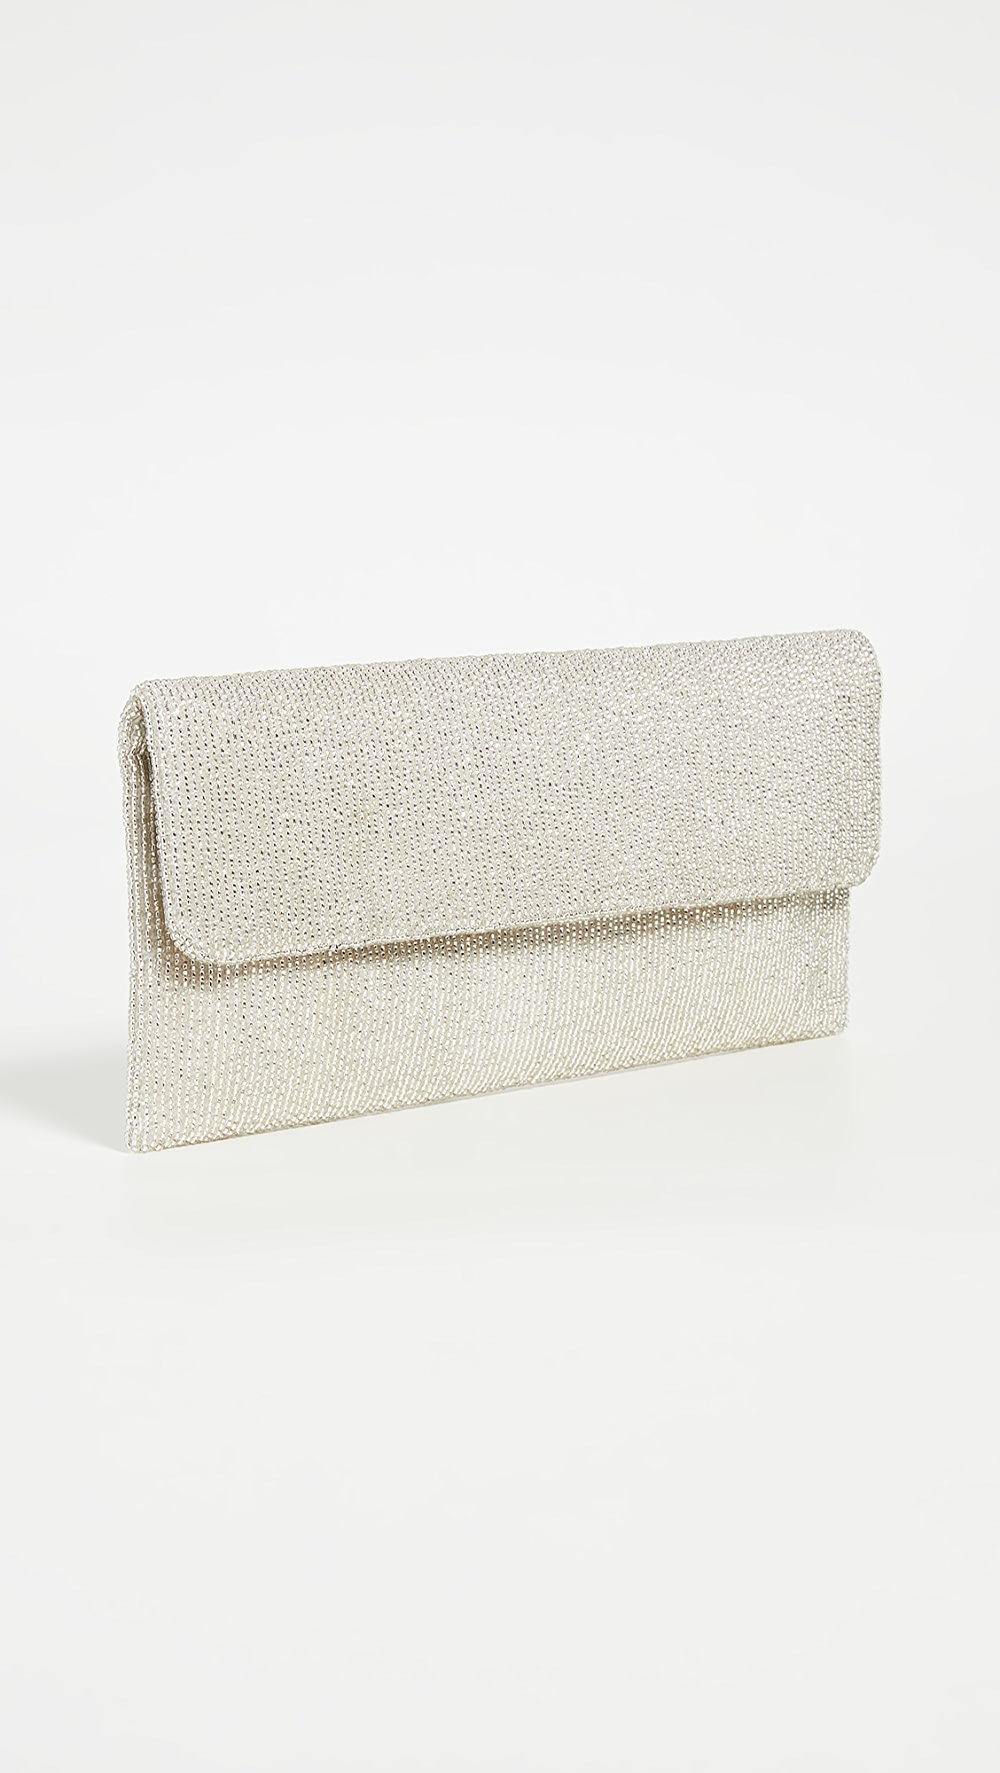 Analytical Santi - Beaded Clutch Unequal In Performance